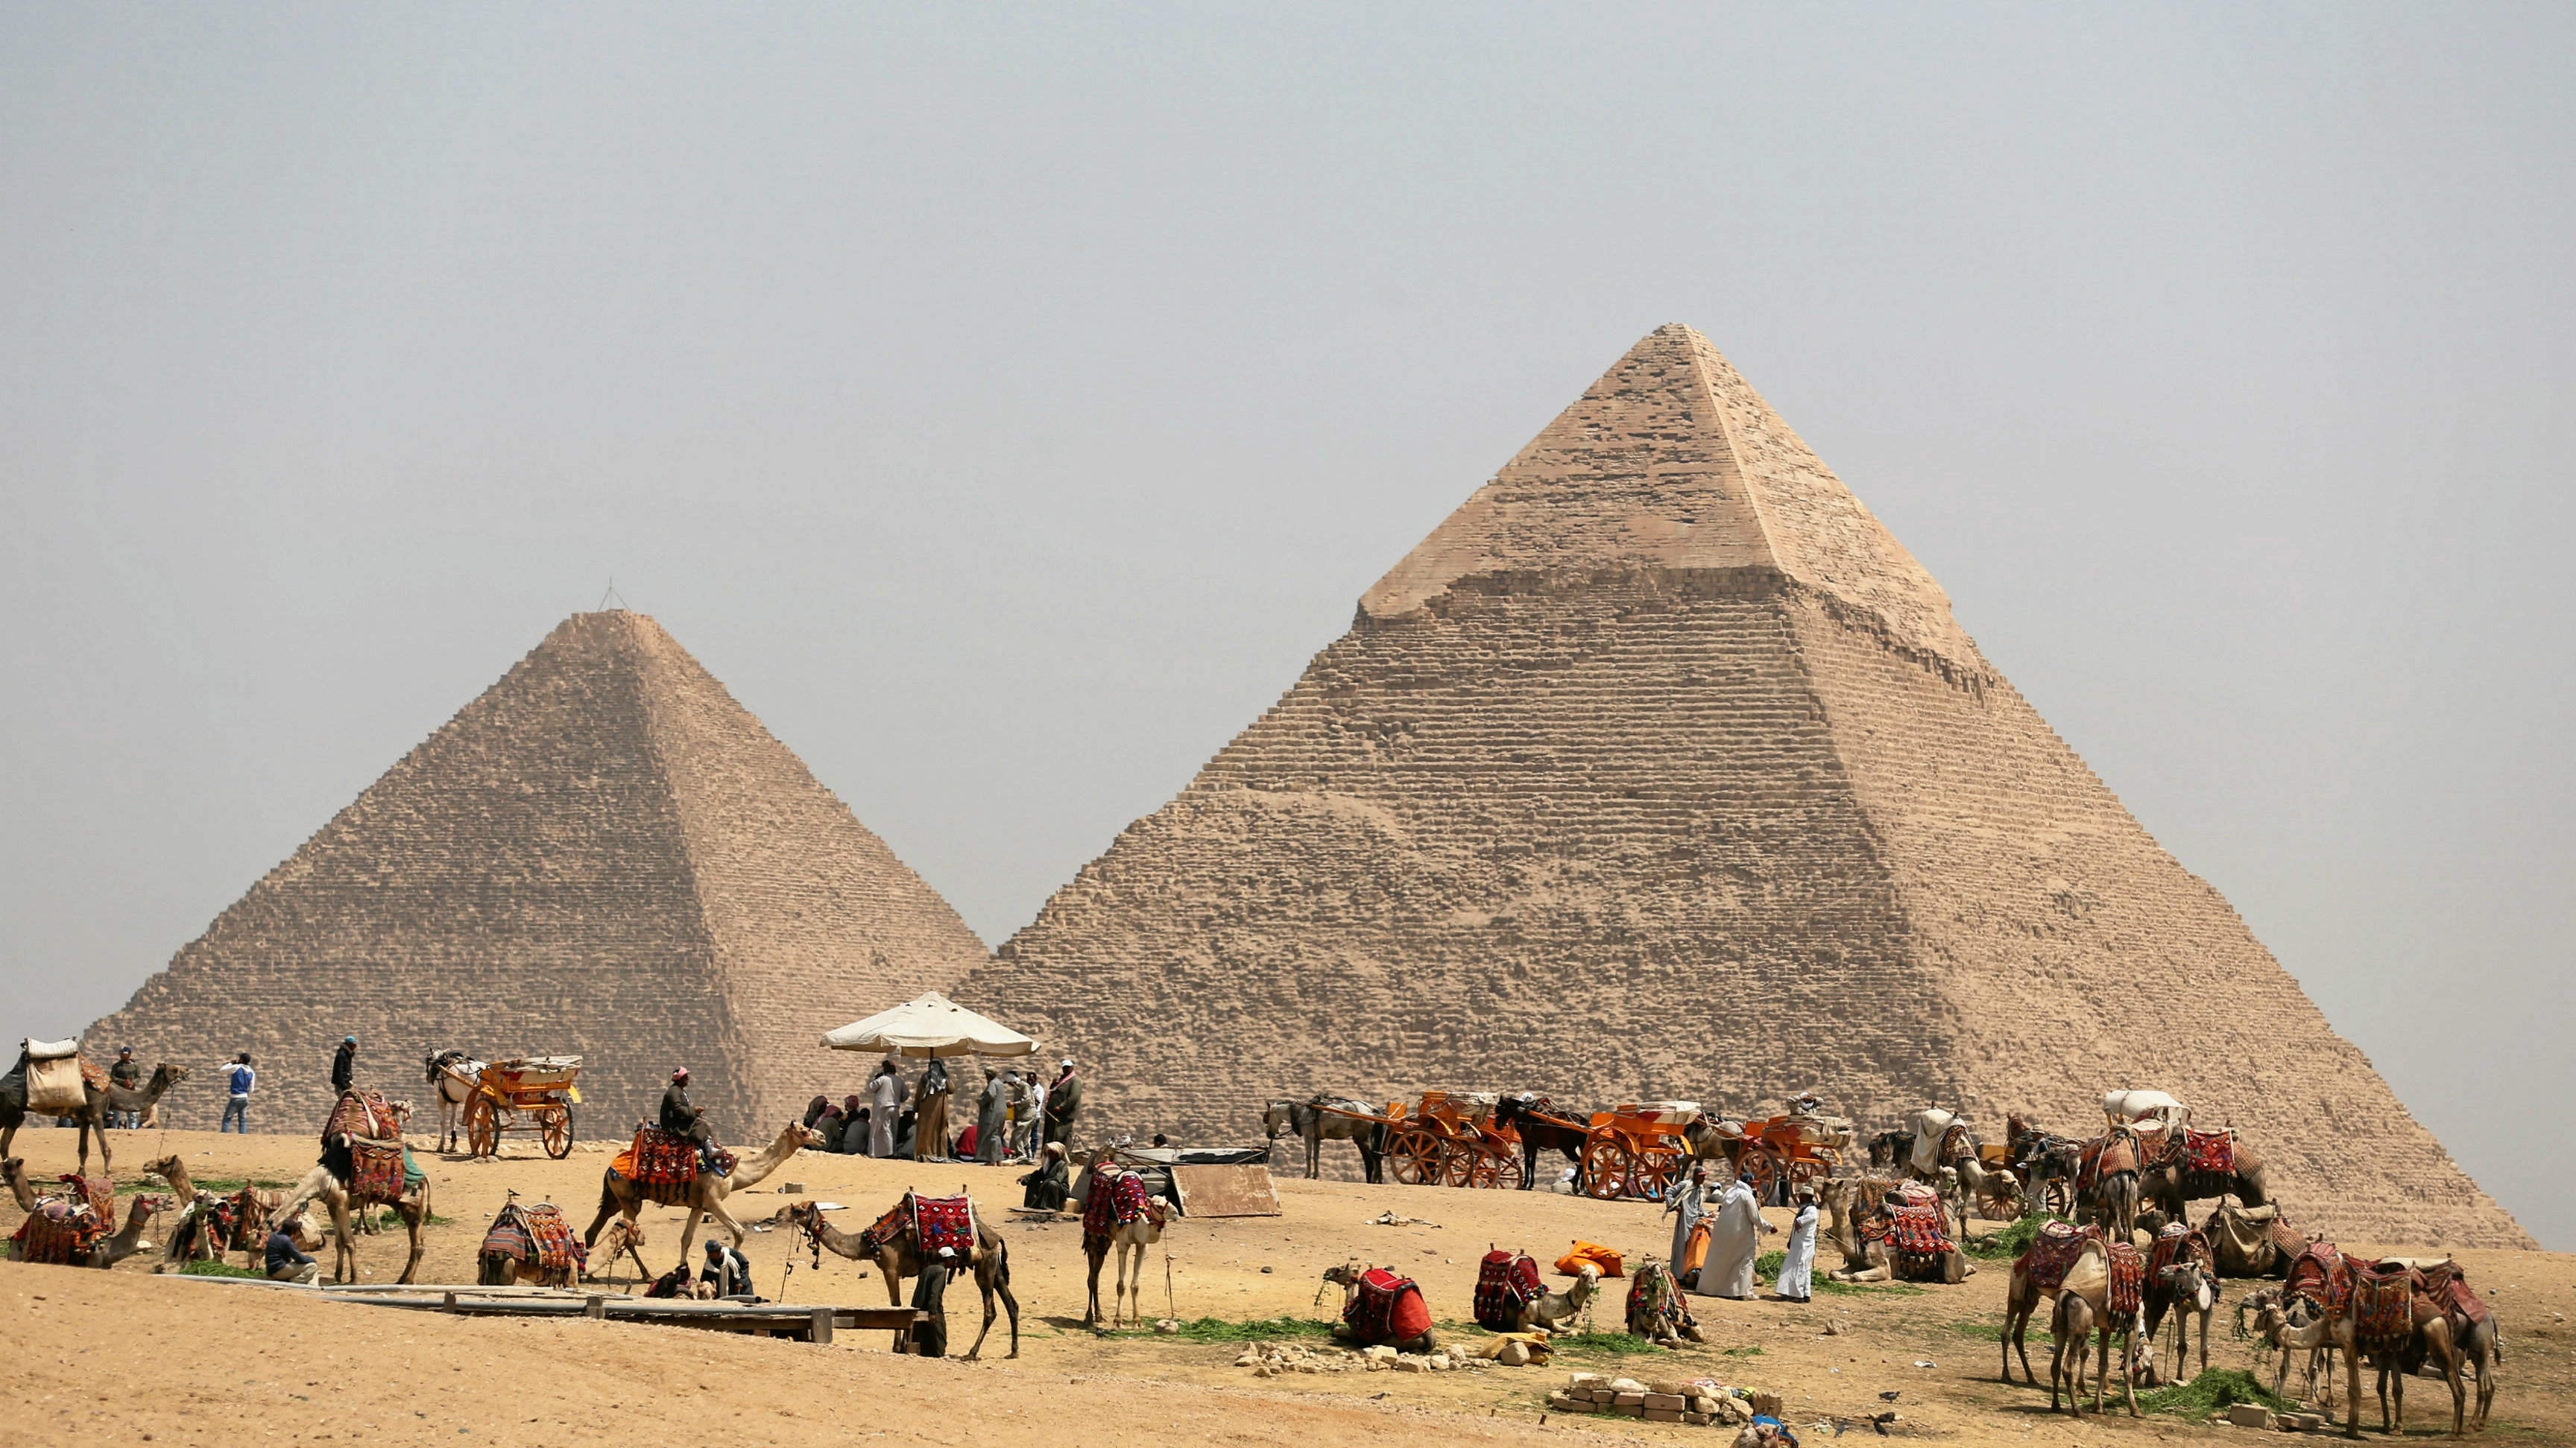 The Great Pyramid of Giza has a secret chamber hidden inside